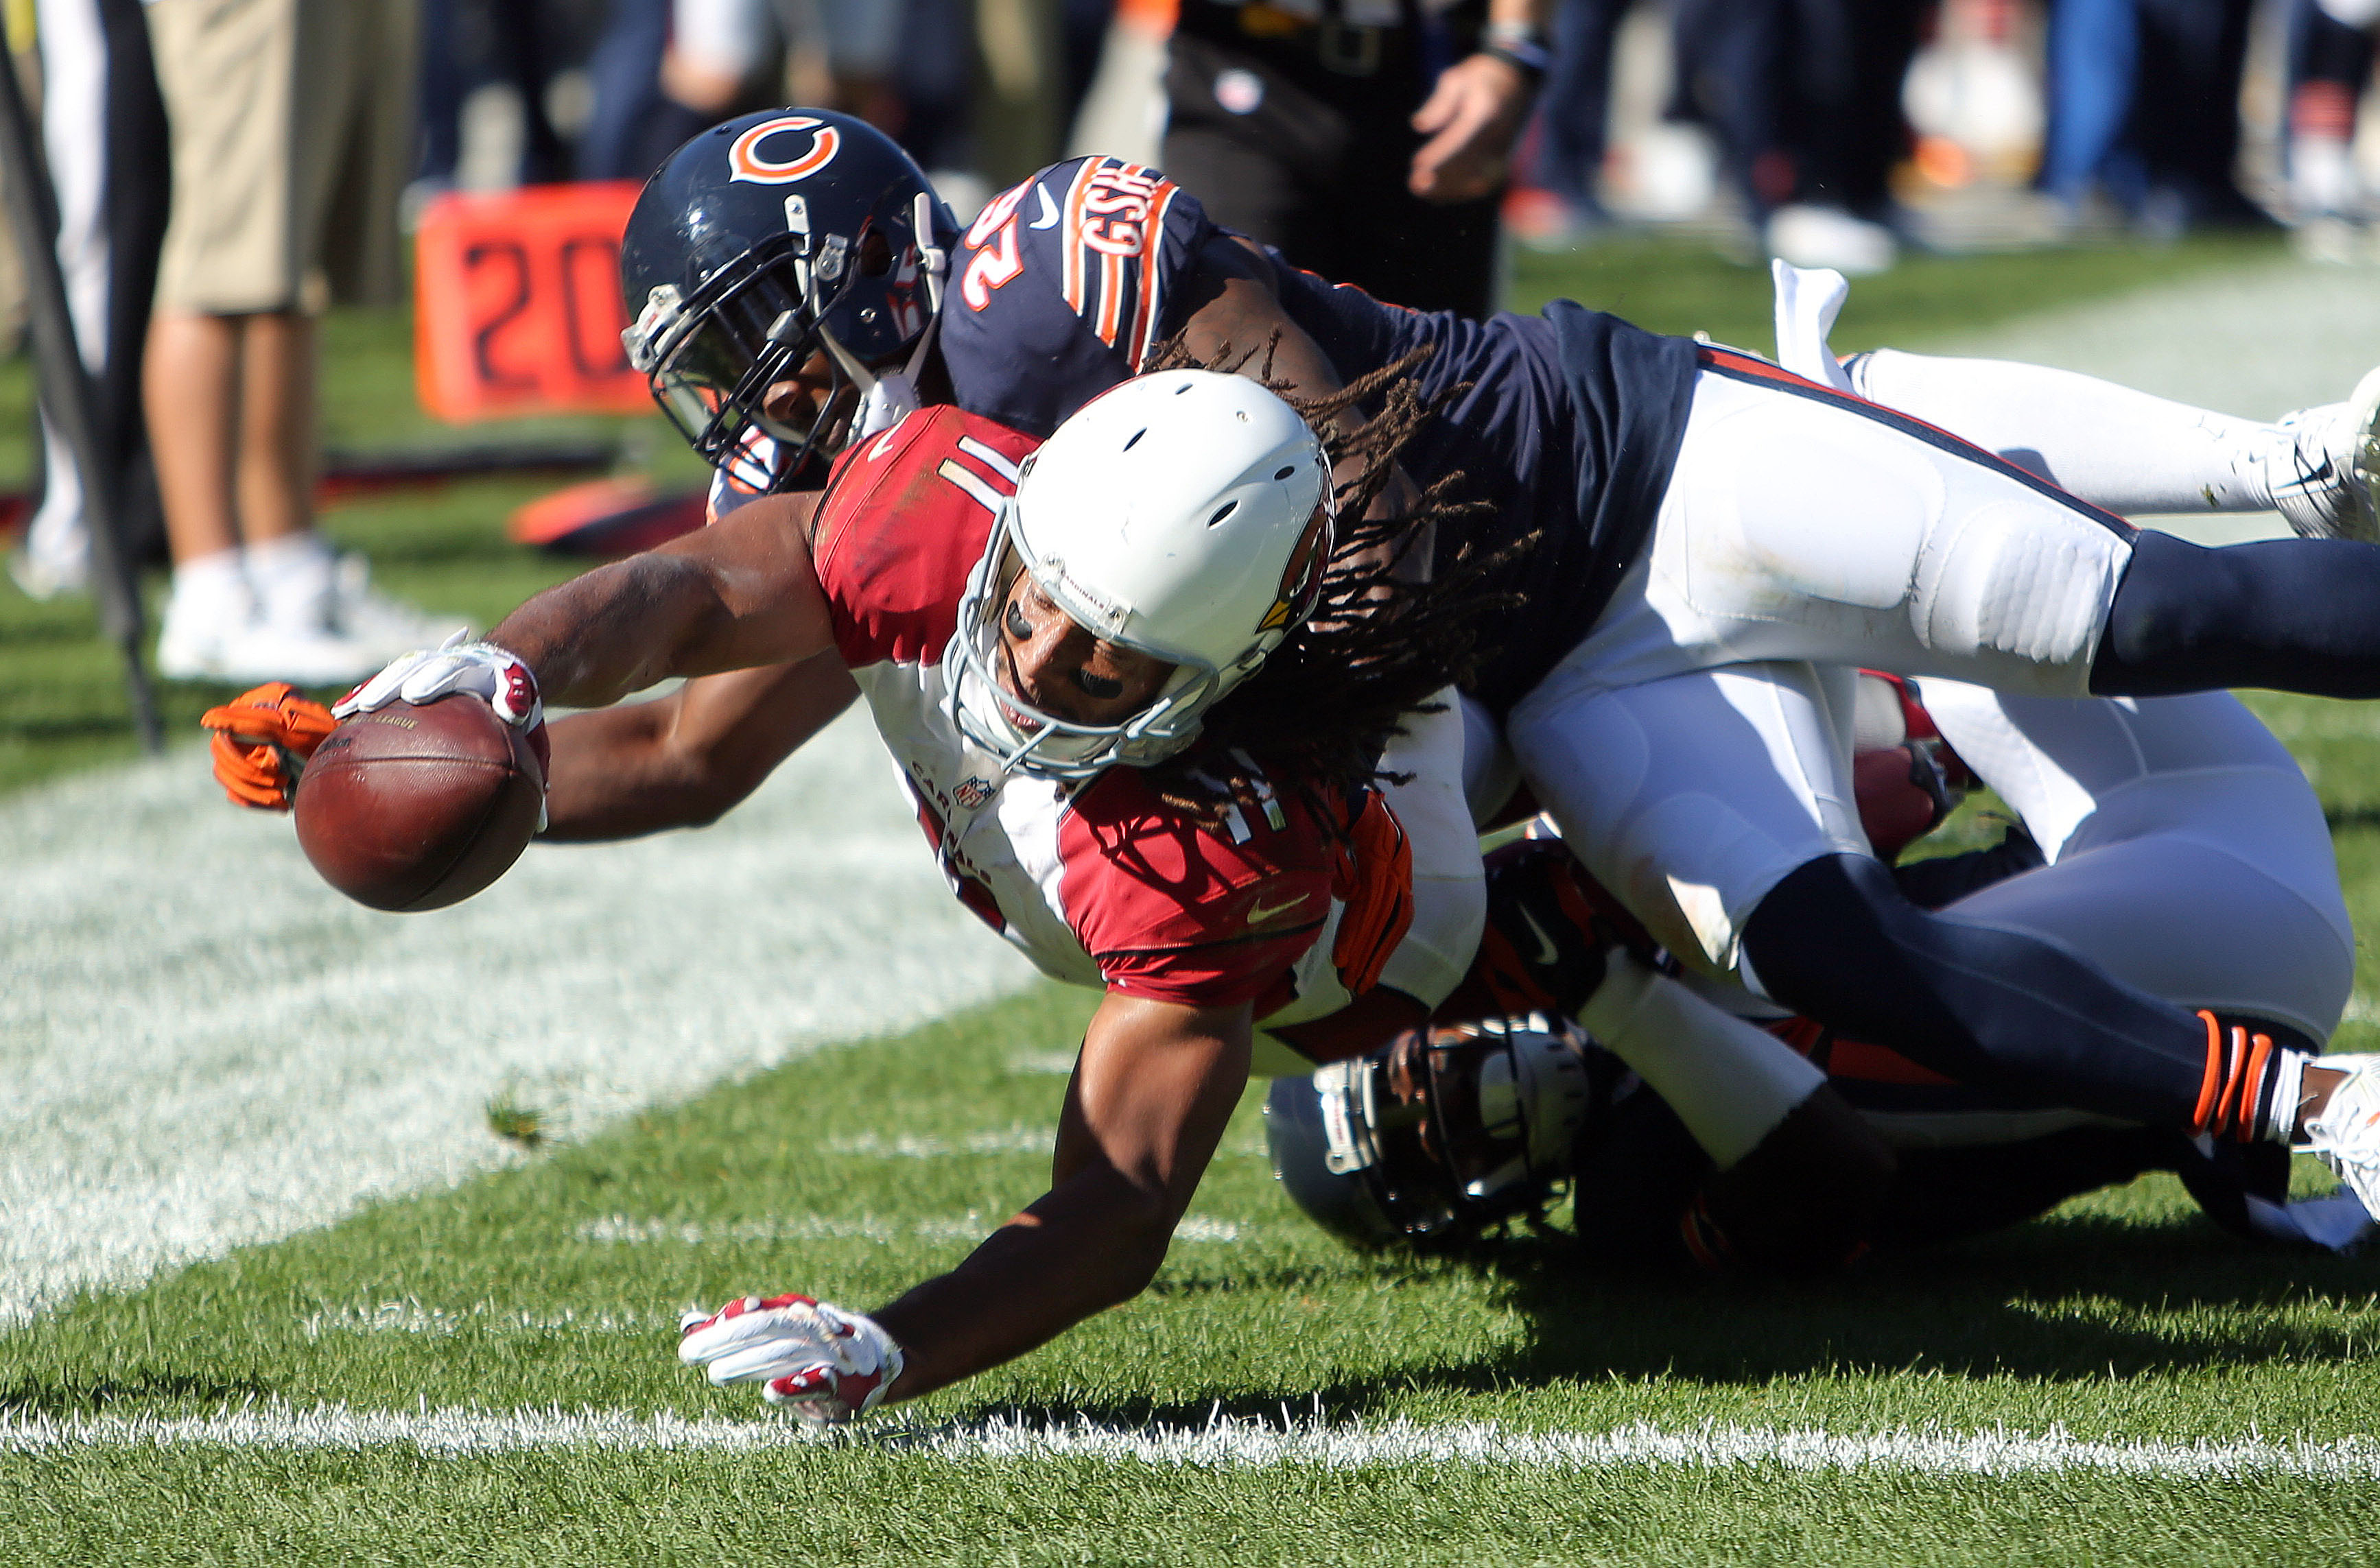 Arizona Cardinals wide receiver Larry Fitzgerald drags Chicago Bears cornerback Terrance Mitchell into the end zone during an NFL football game, Sunday, Sept. 20, 2015 in Chicago. (Steve Lundy/Daily Herald via AP) MANDATORY CREDIT; MAGS OUT